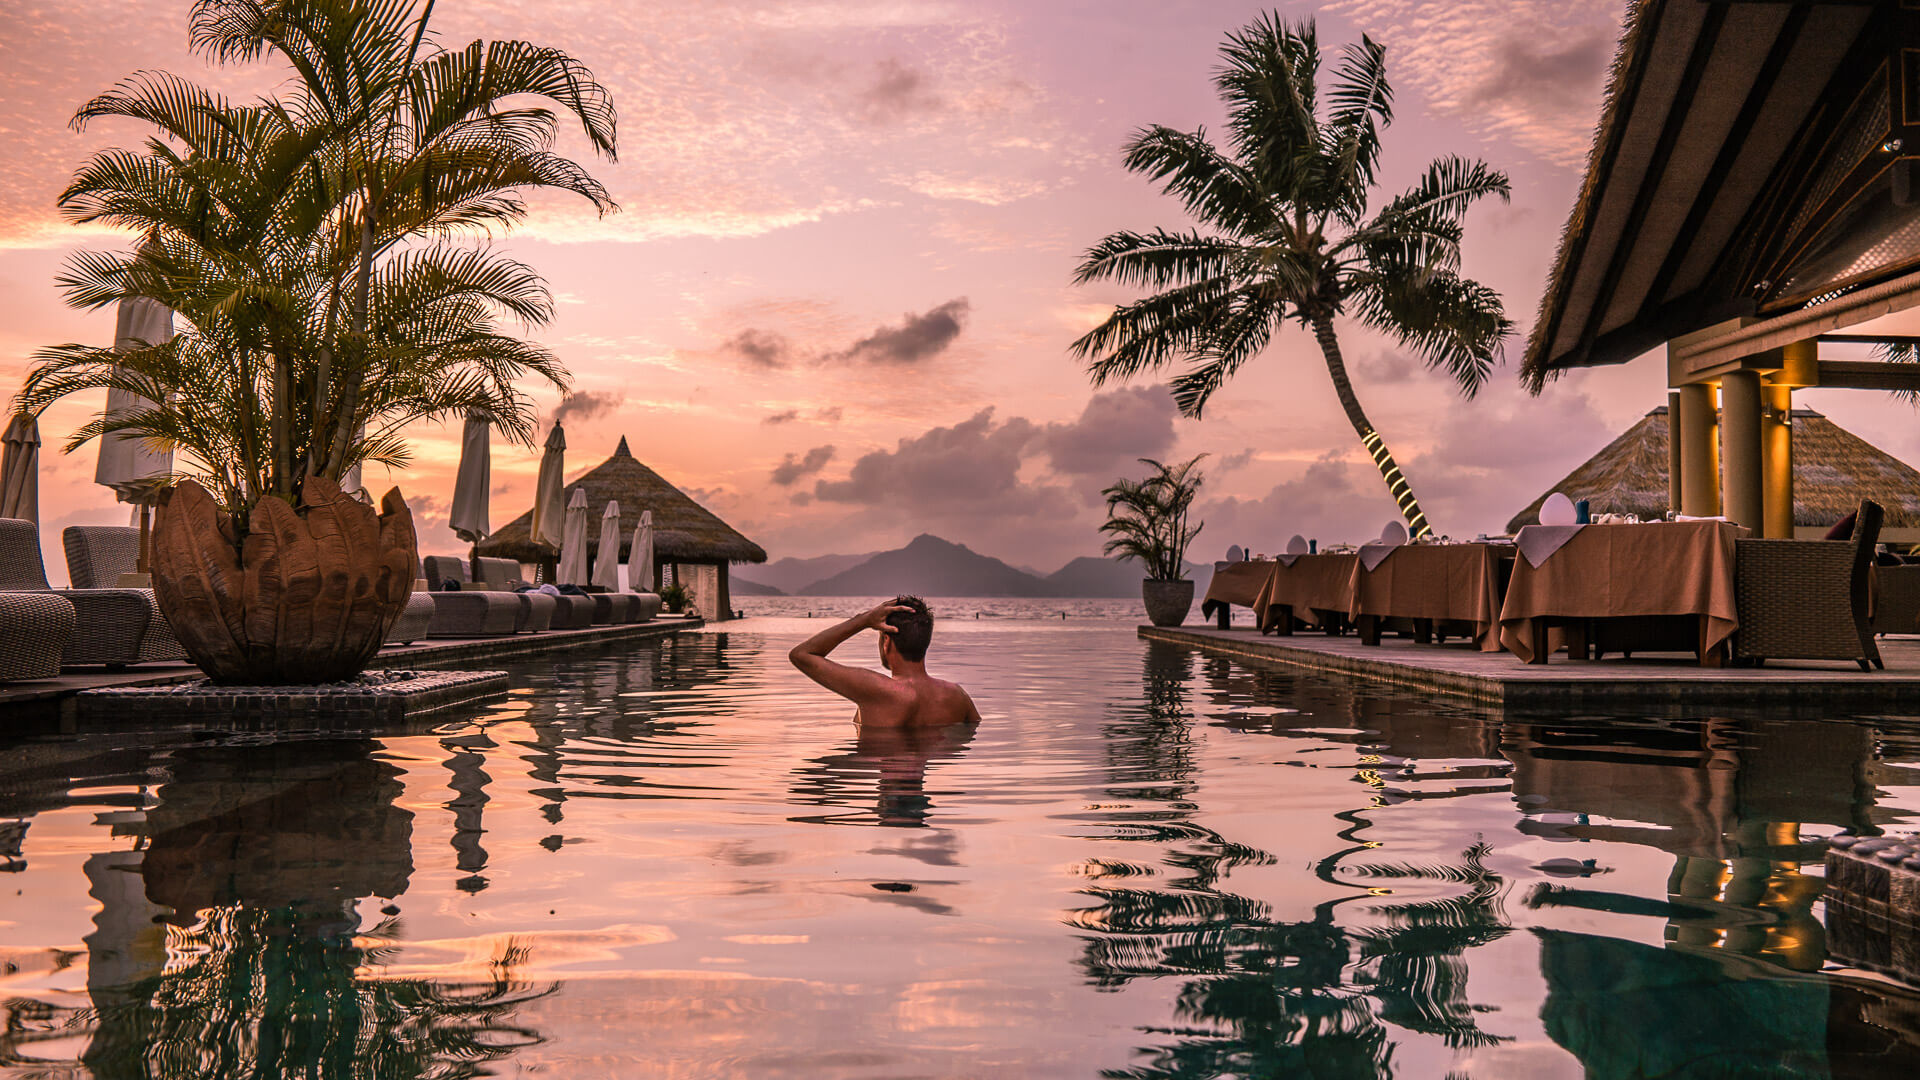 guy swimming in all-inclusive resort vacation